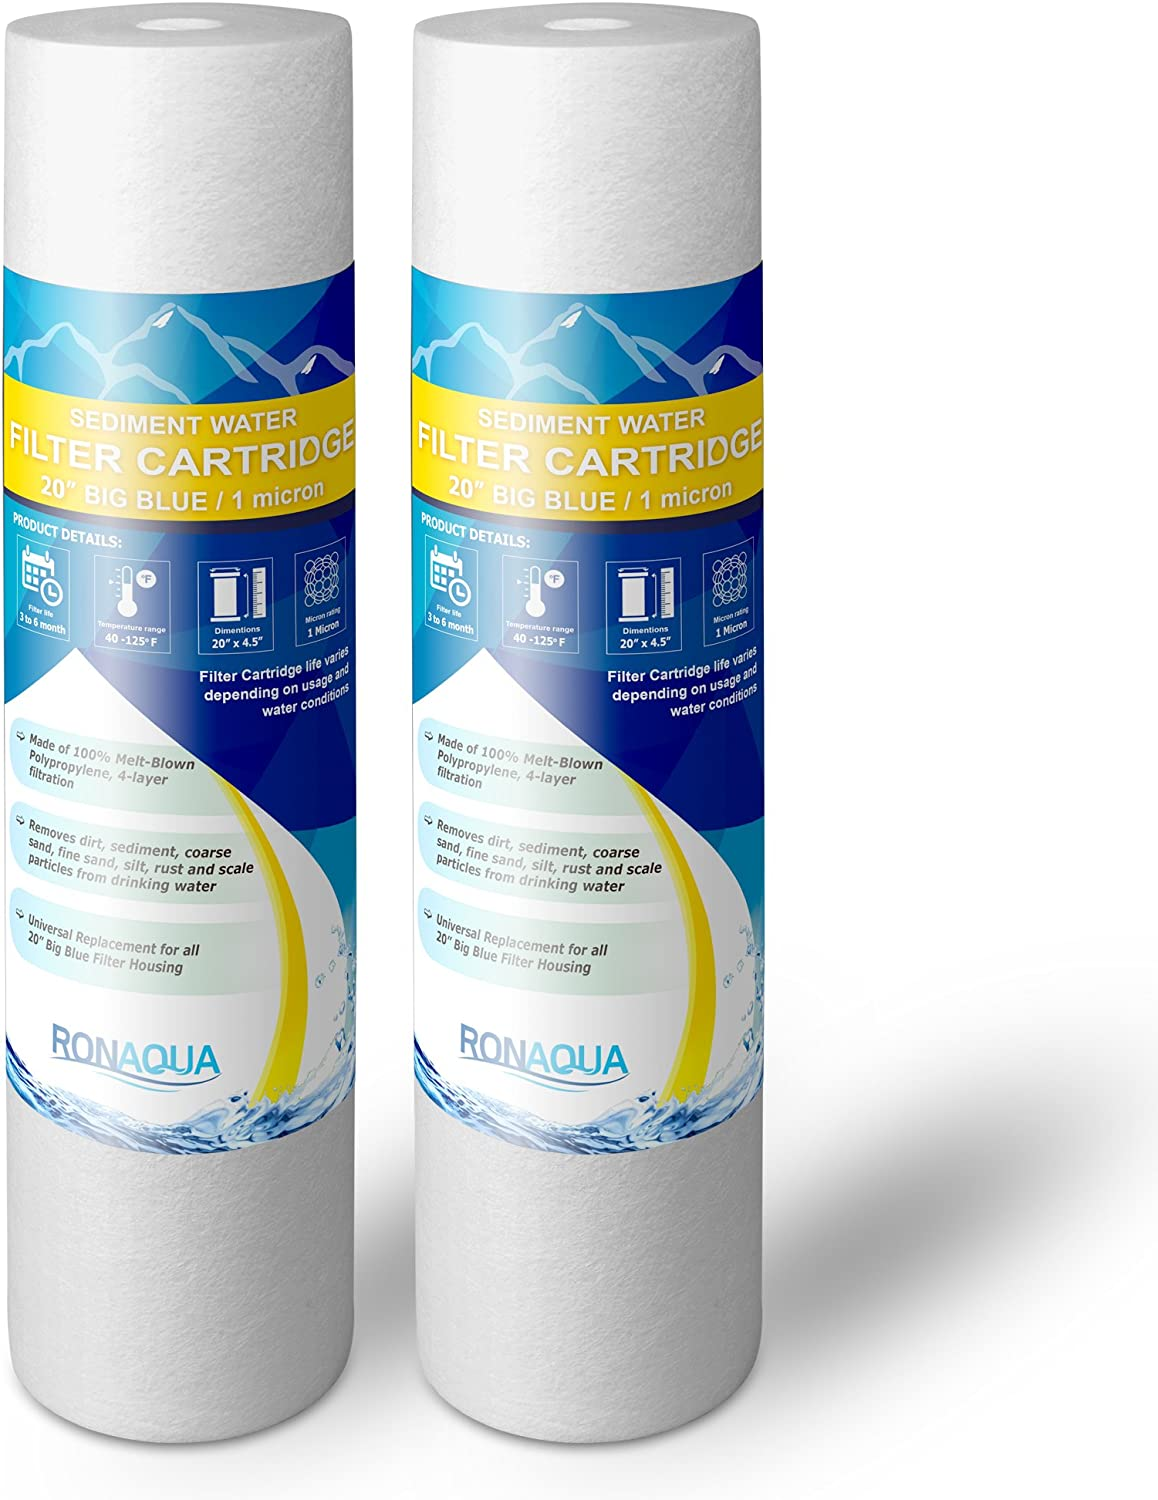 """Big Blue Sediment Replacement Water Filters 1 Micron 4.5""""x 20"""" Cartridges by Ronaqua WELL-MATCHED with 155358-43, 2PP20BB1M, AP810-2, FPMB-BB5-20, FP25B, P5-20BB, SDC-45-2005 (2 Pack, 20"""")"""